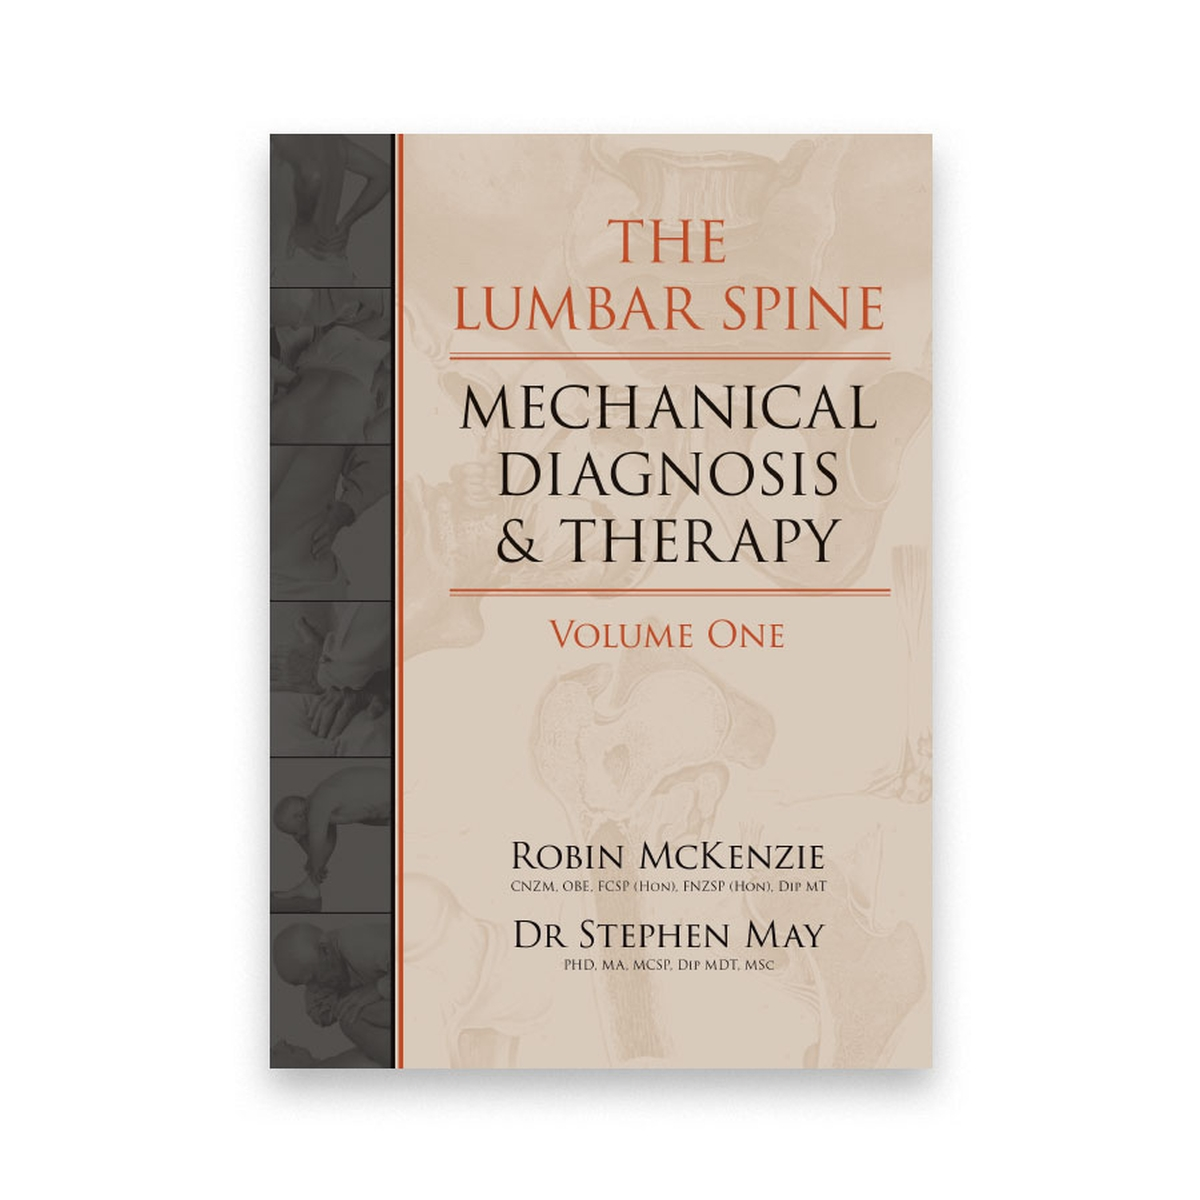 The Lumbar Spine: Mechanical Diagnosis & Therapy | Robin McKenzie | OPTP